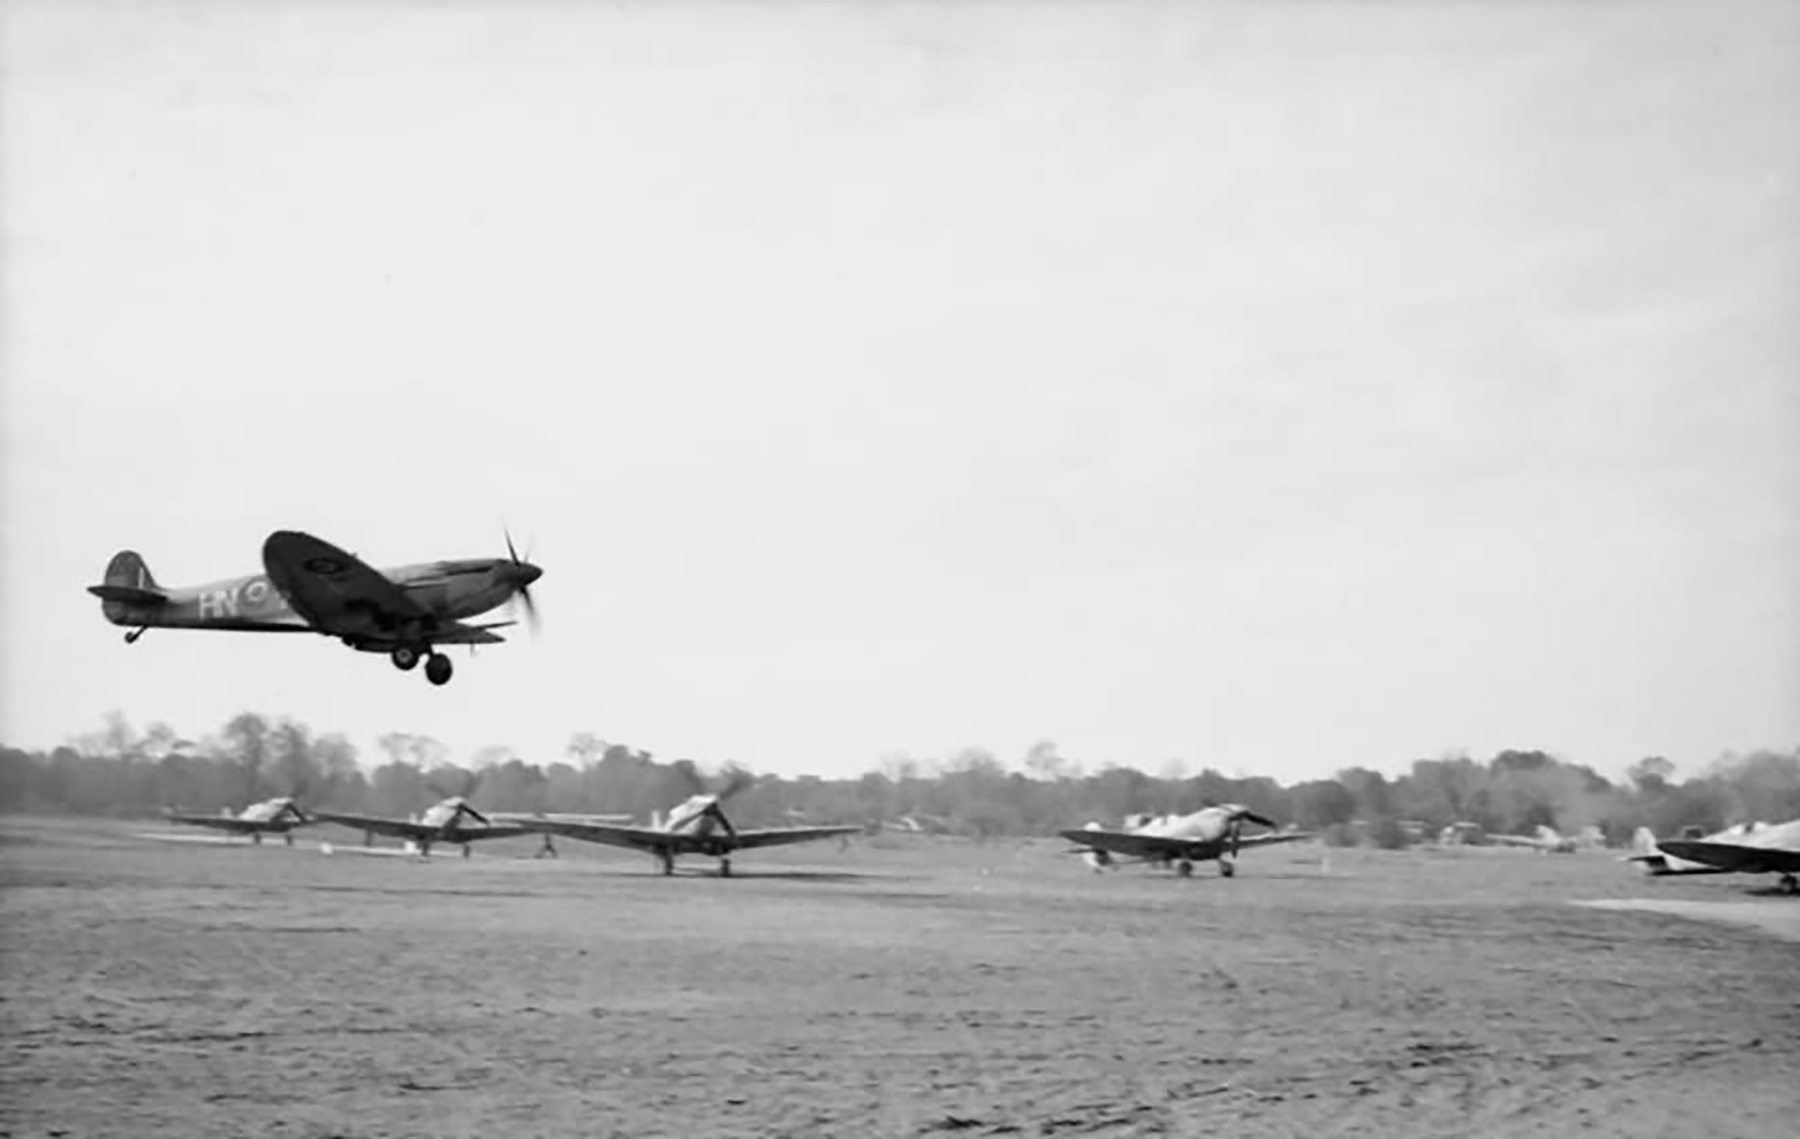 Spitfire MkIX RAF 93Sqn HN comes in to land at Lago web 01